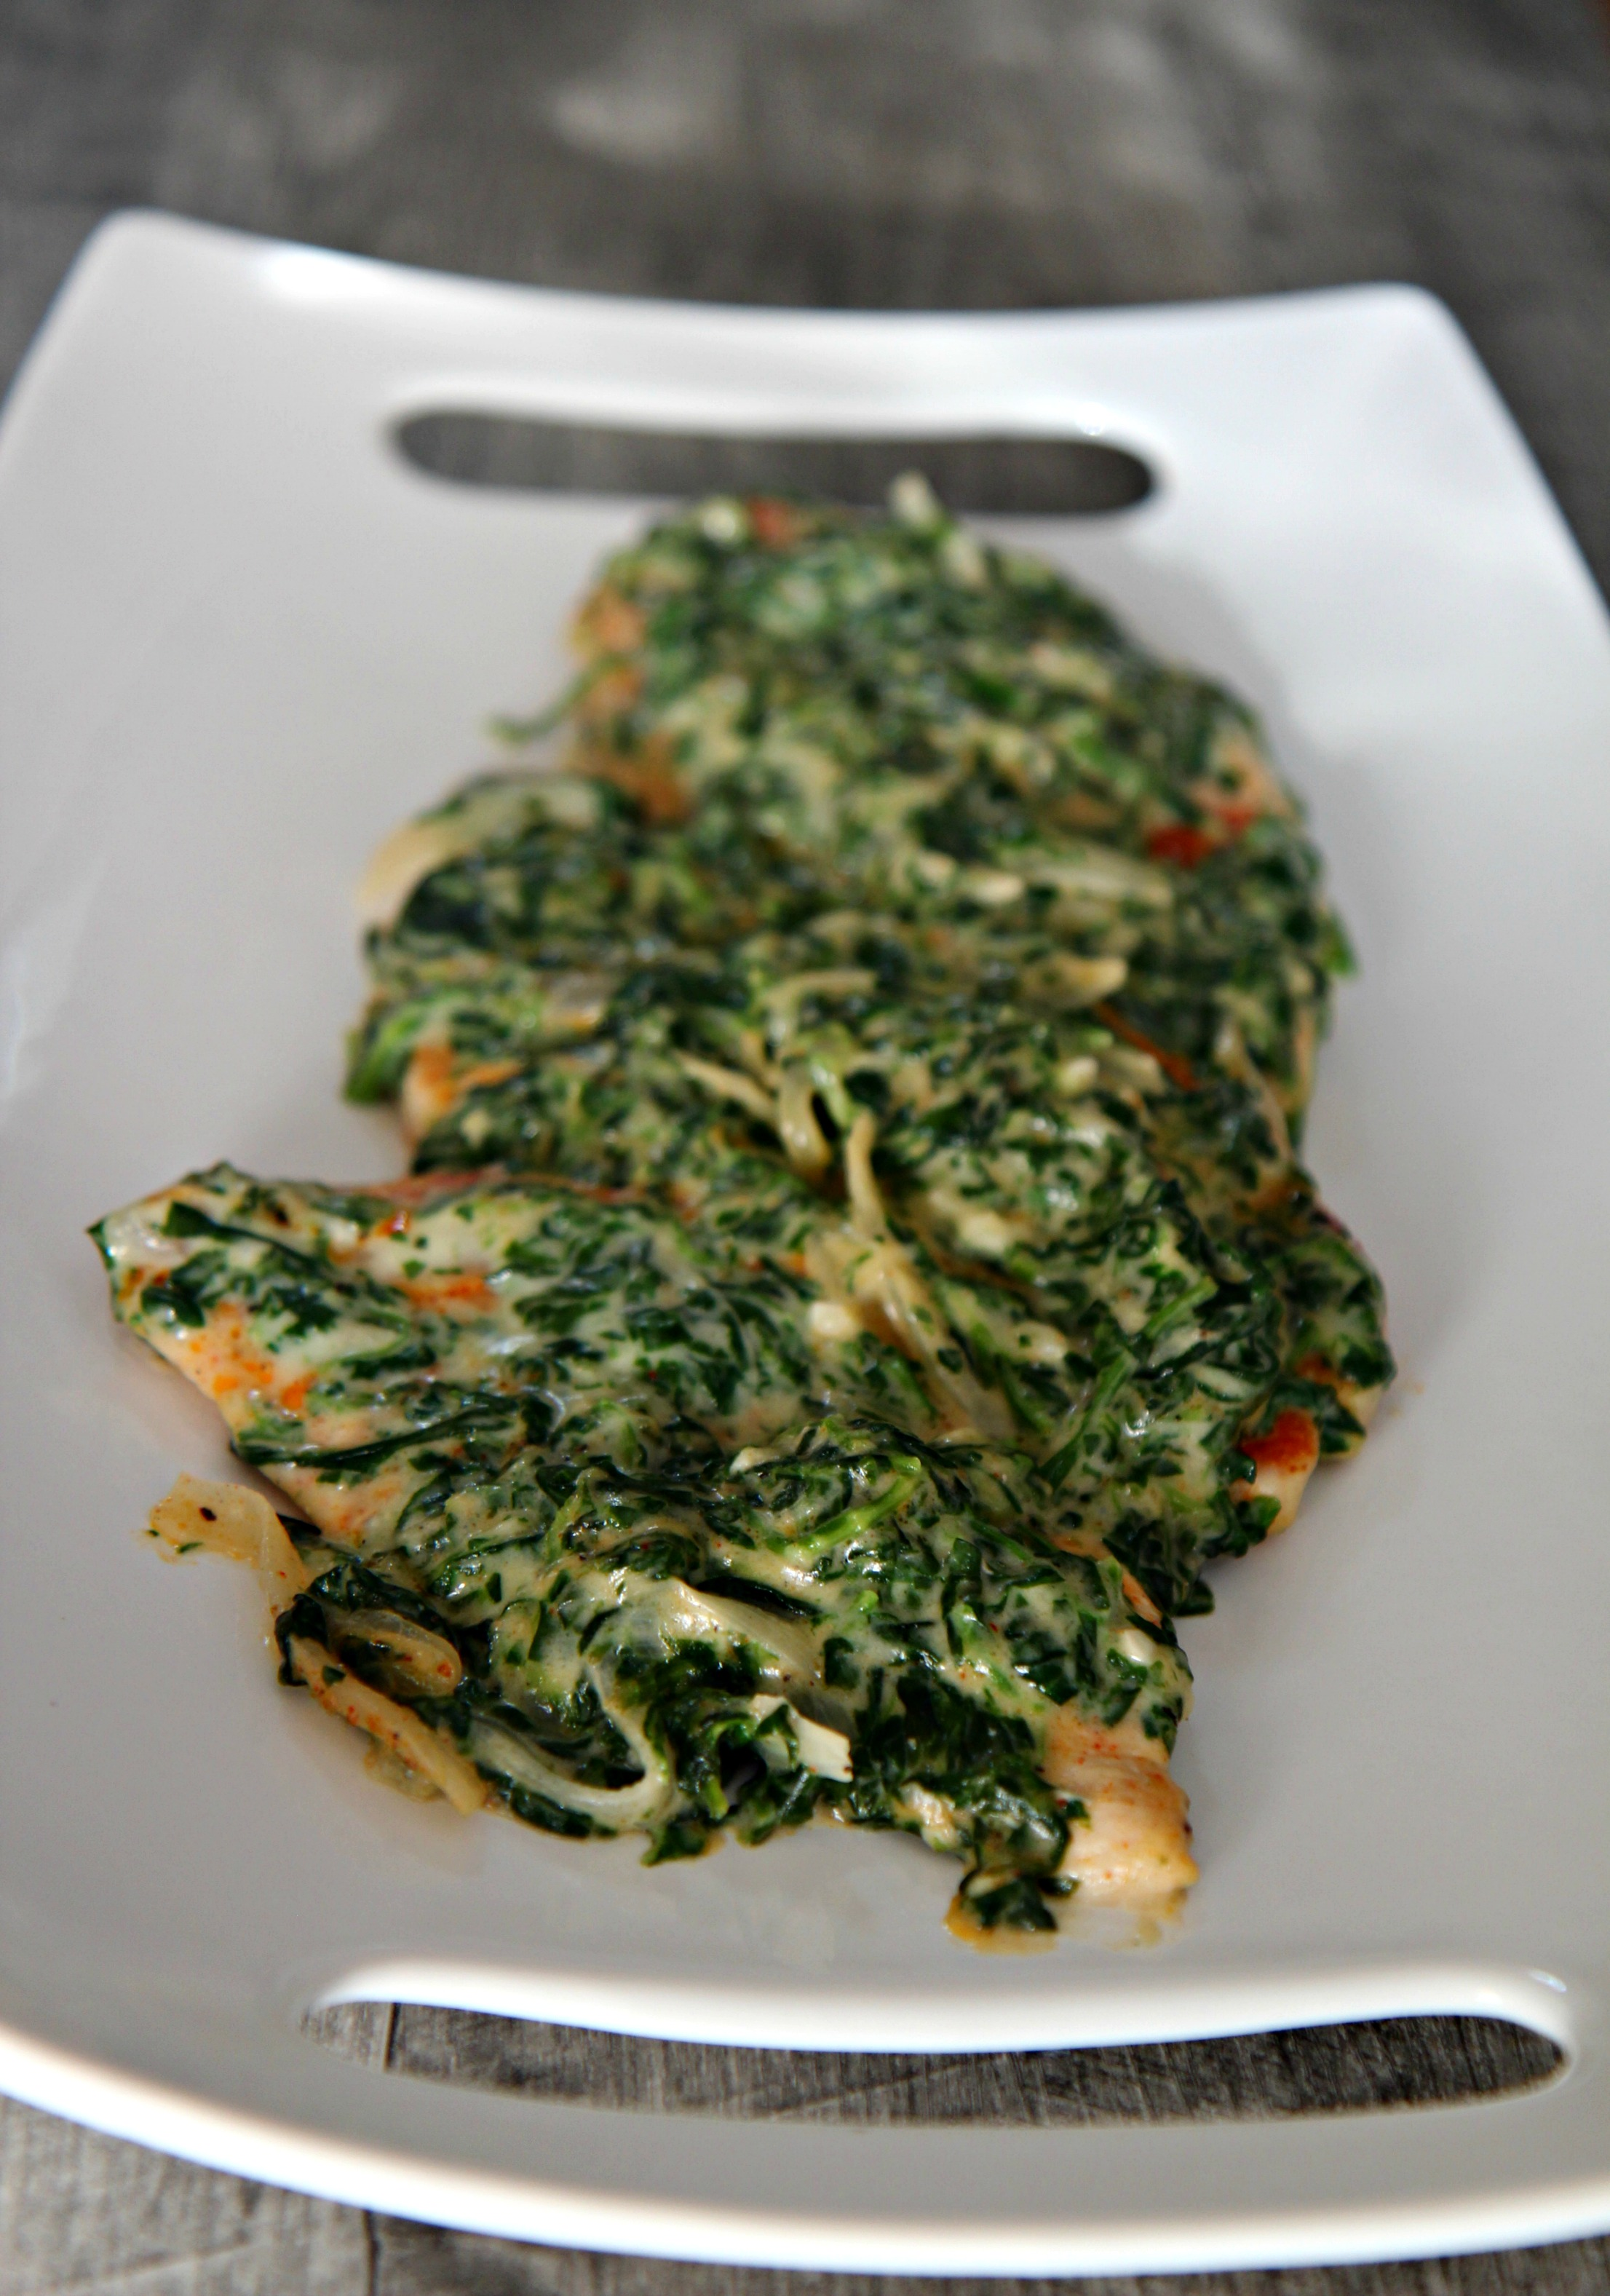 Creamy Spinach Chicken doesn't need a side, it's good on its own.